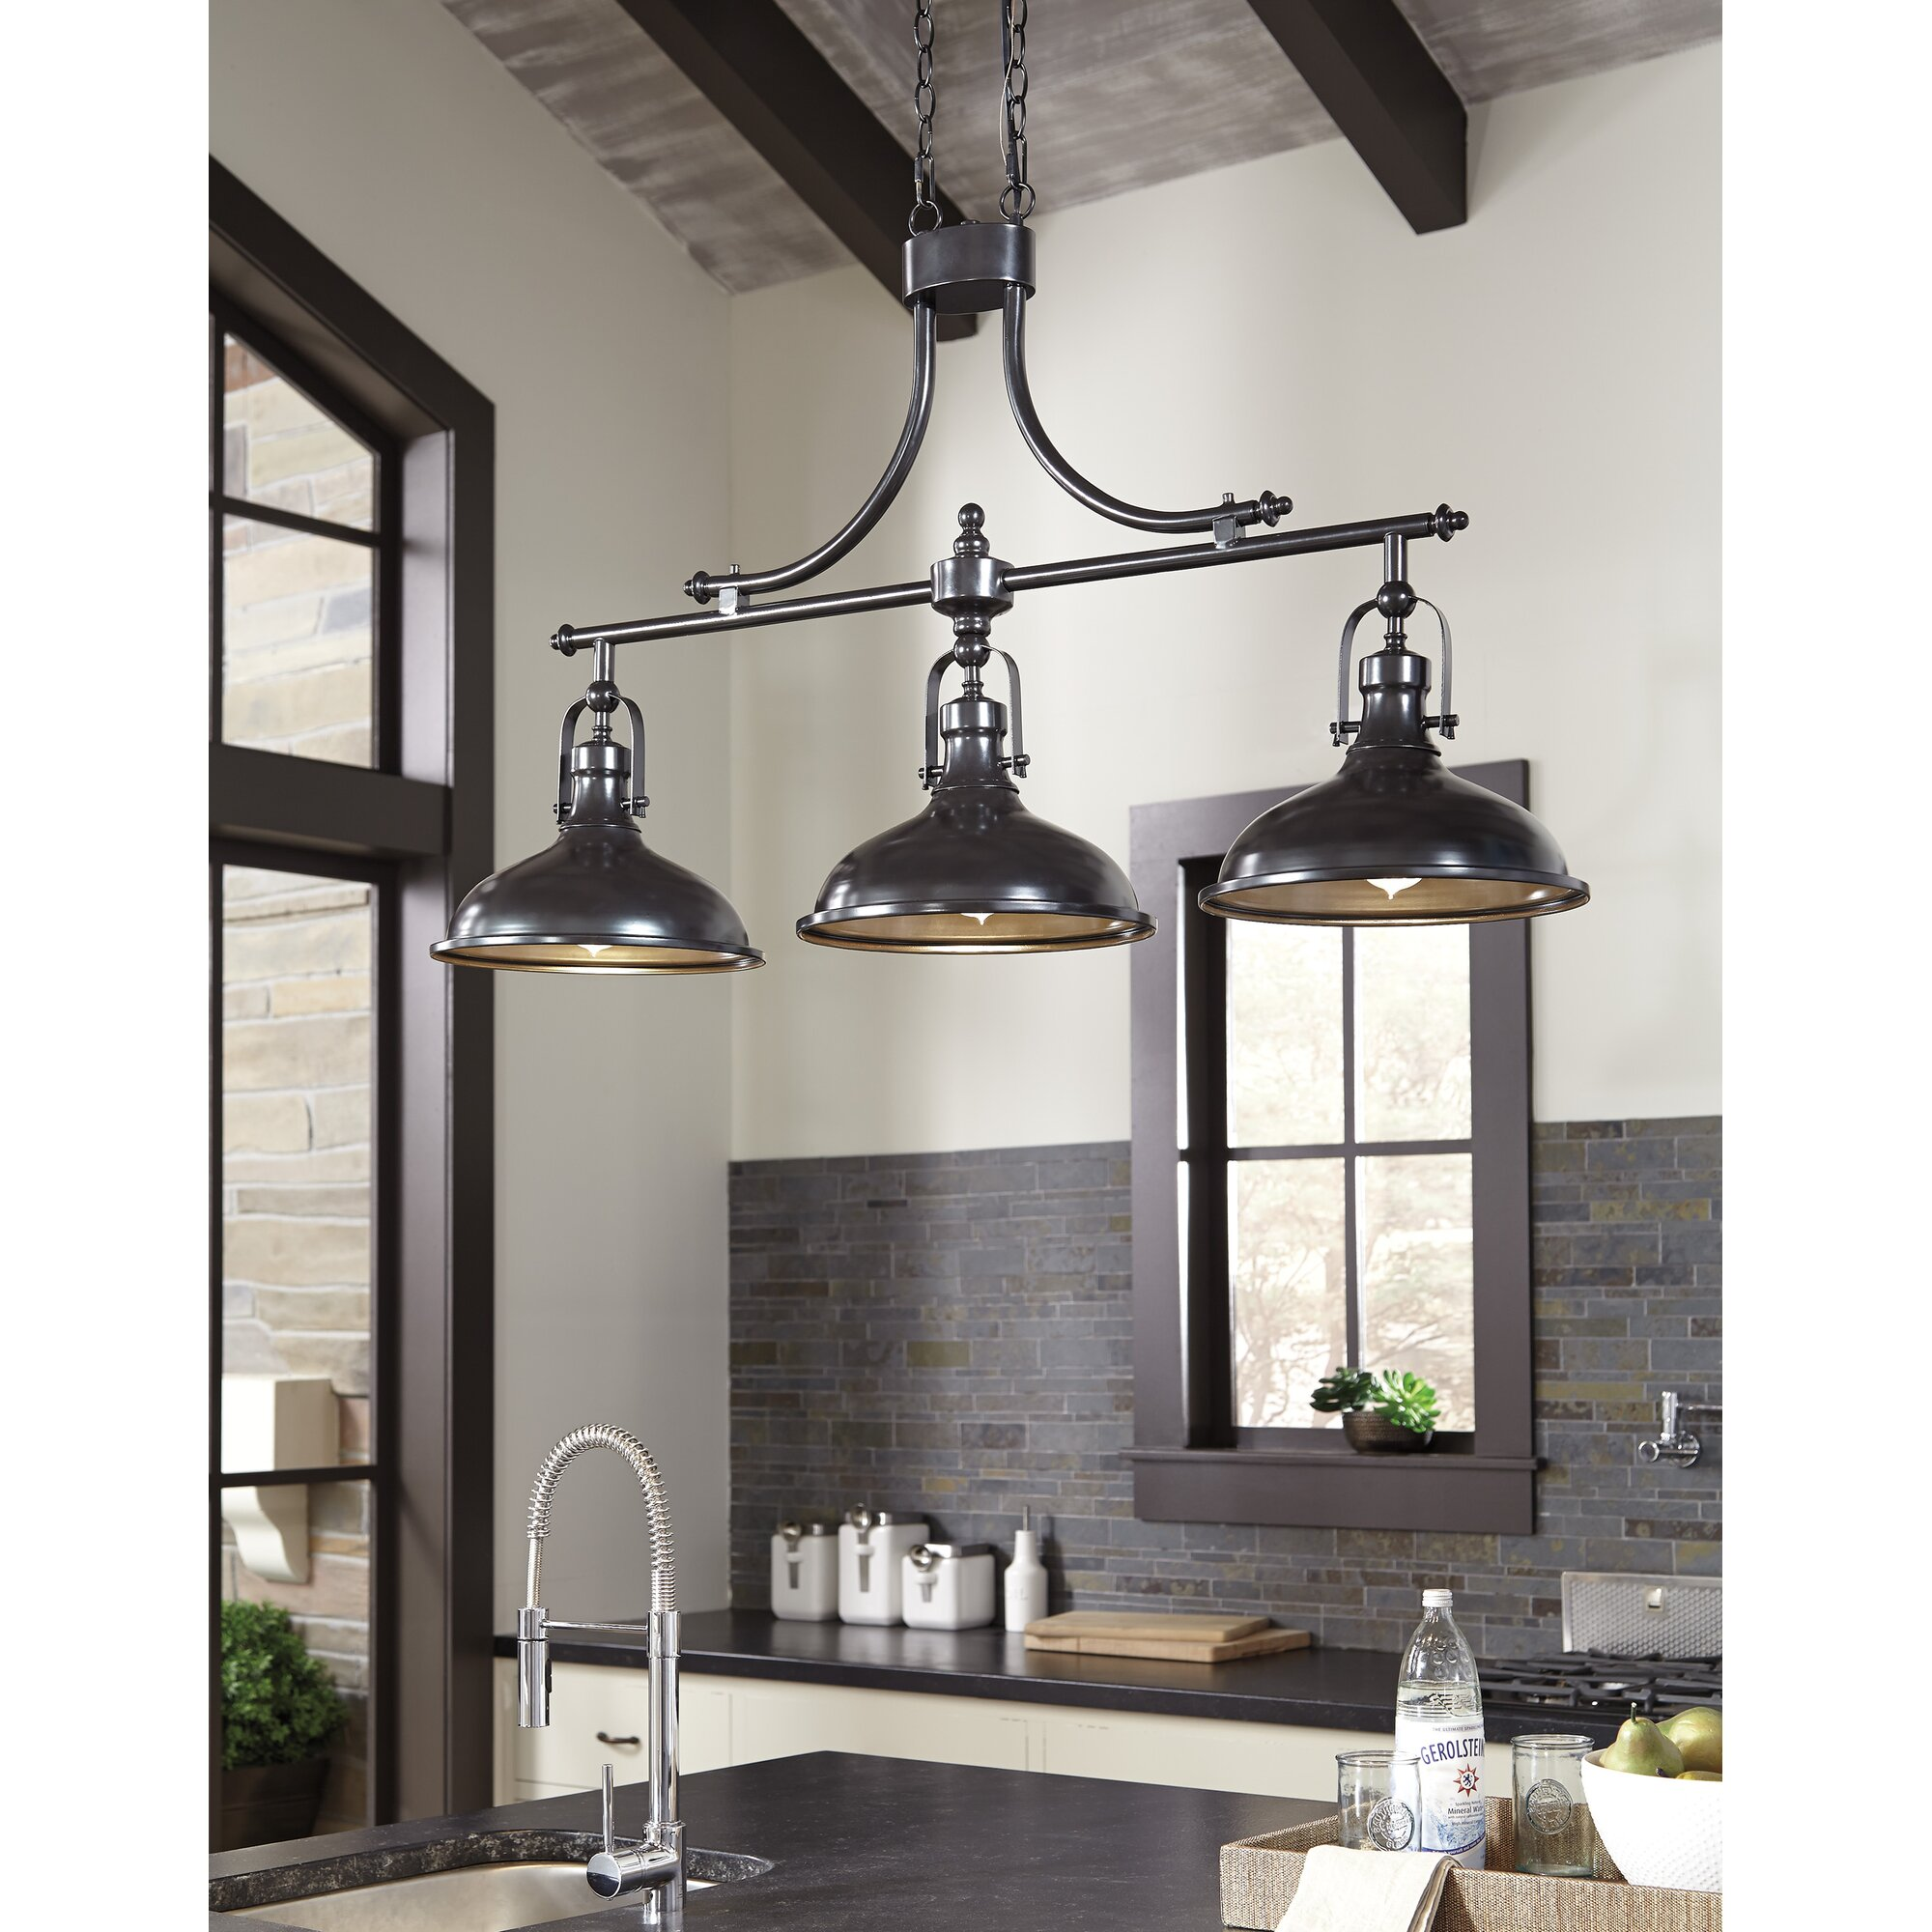 Kitchen Island Pendant Lighting: Breakwater Bay Strauss 3-Light Kitchen Island Pendant